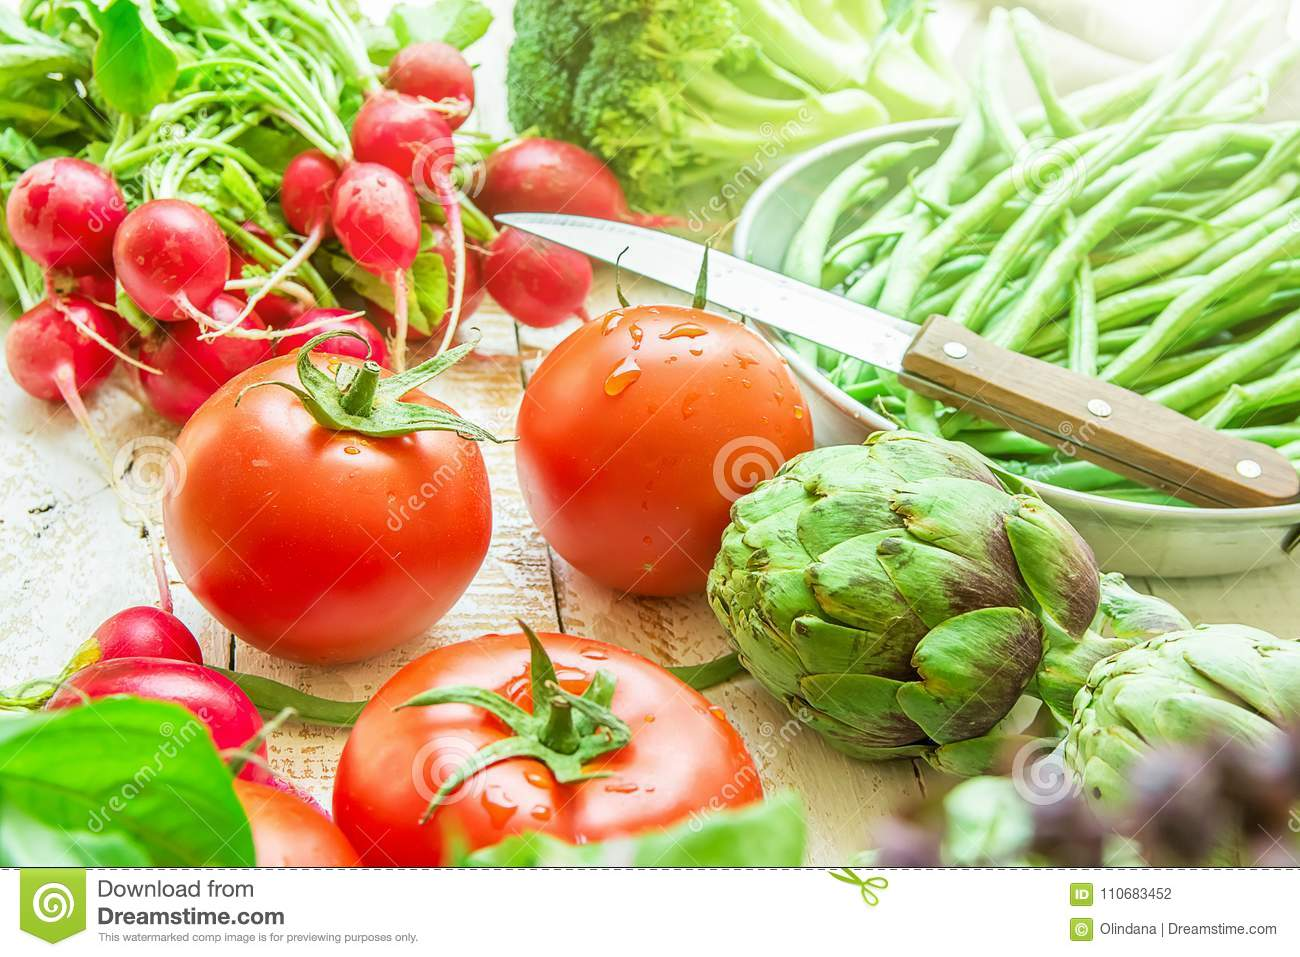 Variety of Fresh Organic Vegetables Artichokes Green Beans Tomatoes Red Radish Broccoli on Wood Garden Kitchen Table in Sunlight. Vegan Clean Eating ...